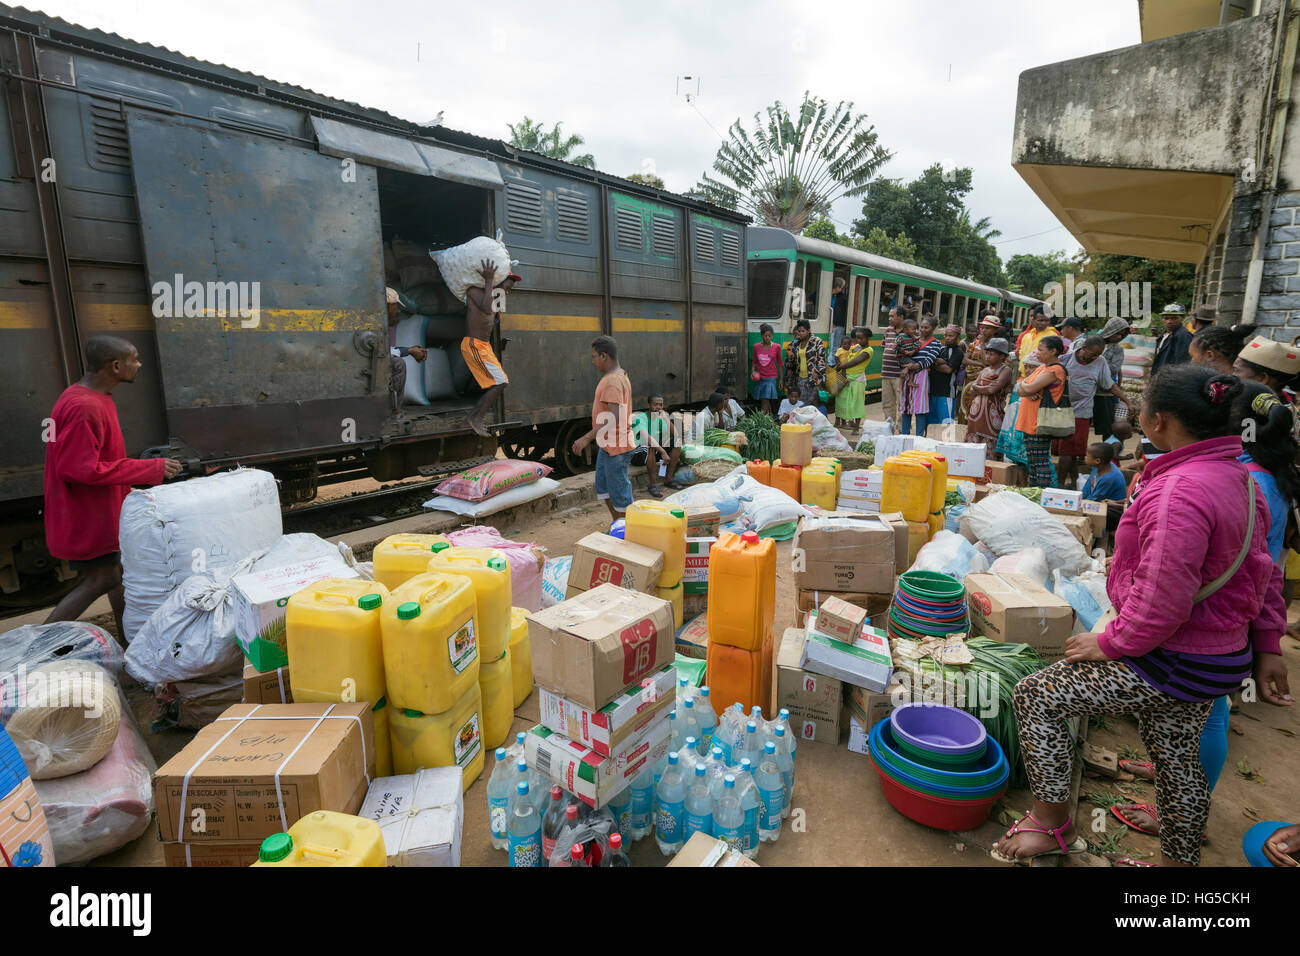 Fianarantsoa to Manakara FCE train, cargo being unloaded, eastern area - Stock Image